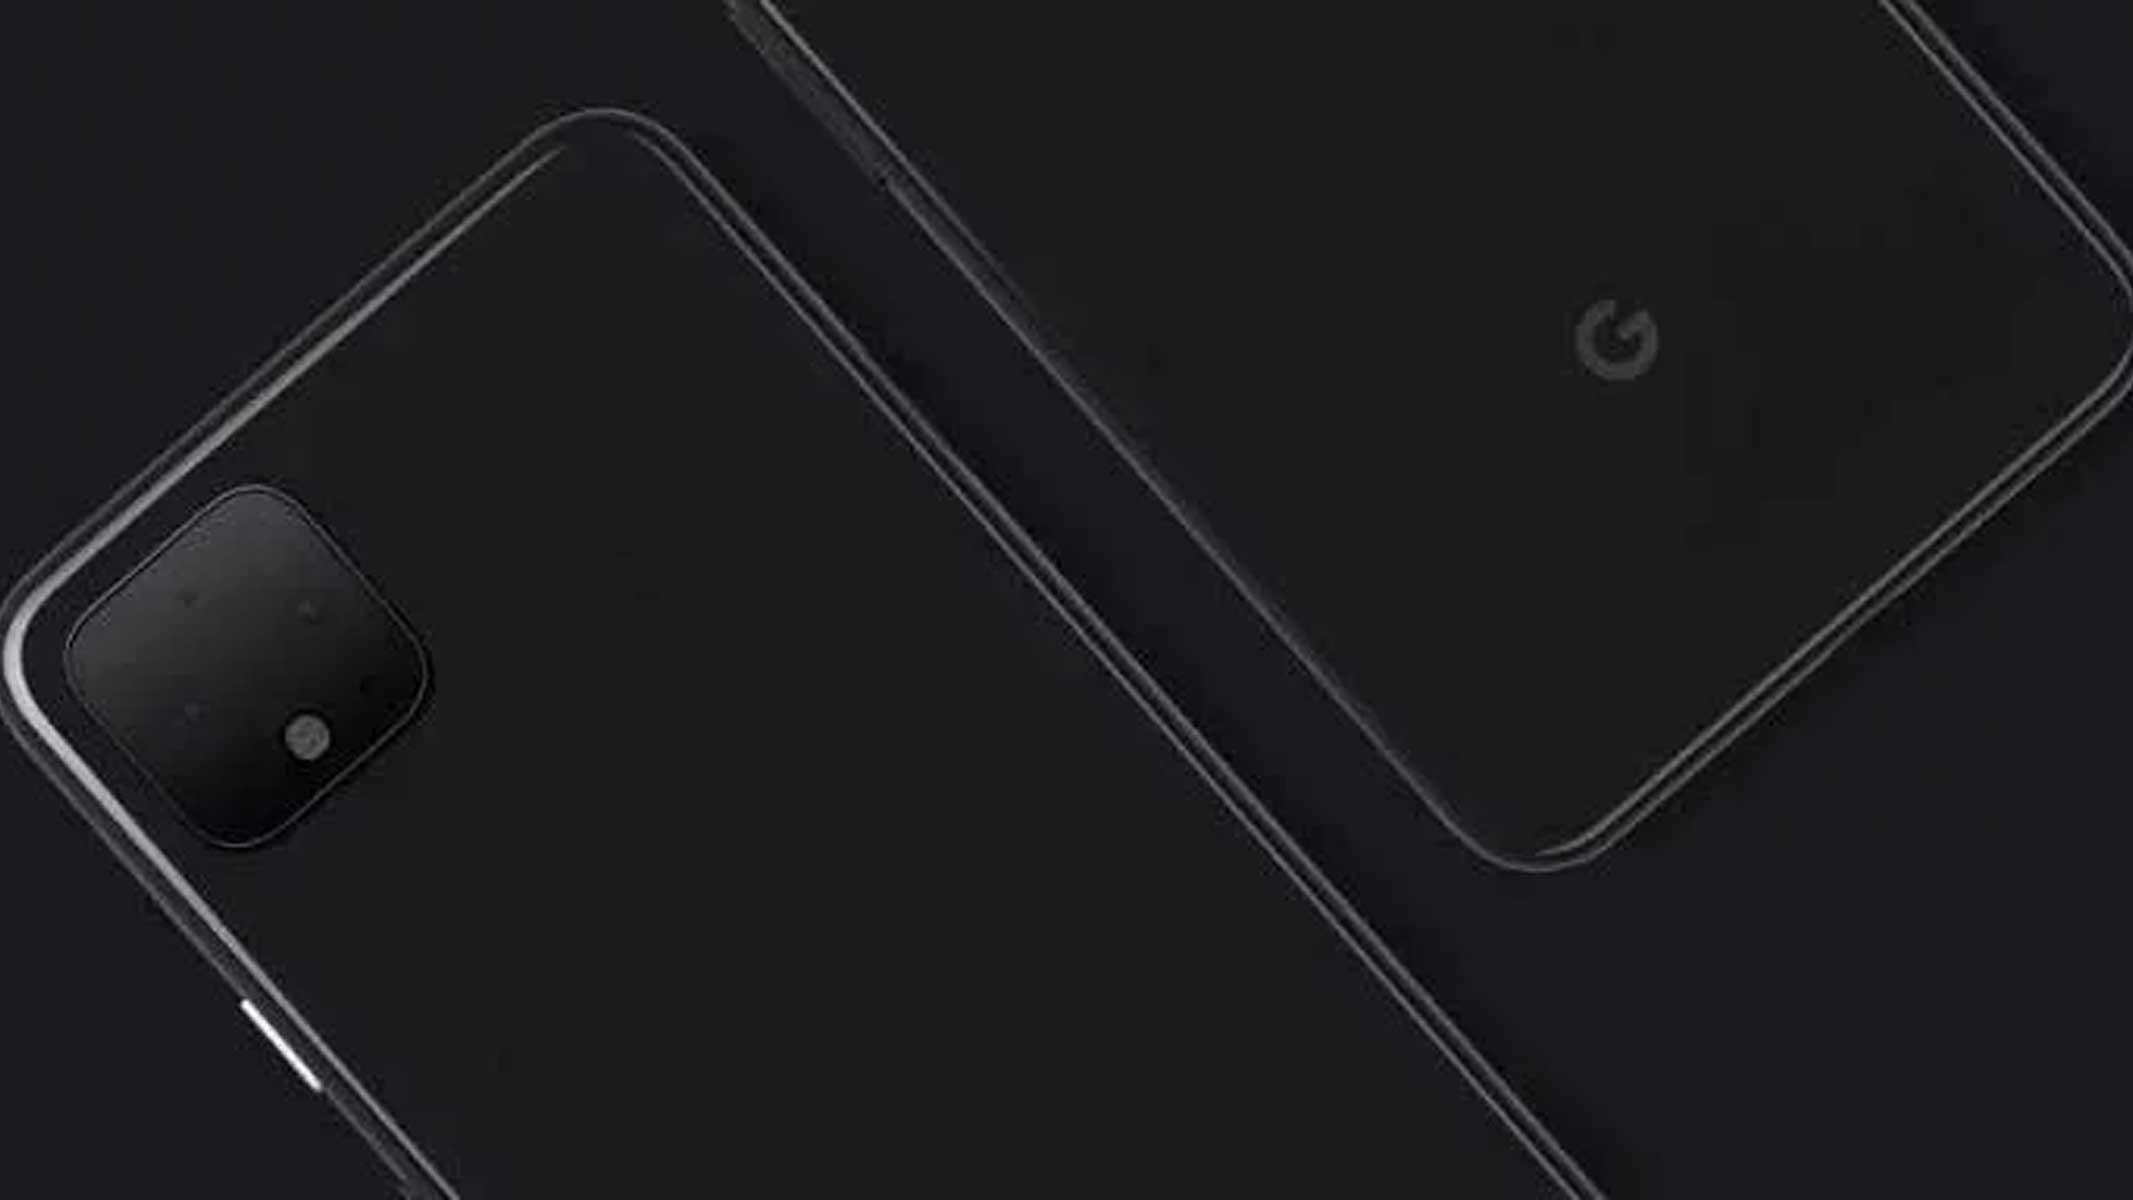 Google's Pixel 4 Is Likely Going To Leapfrog The iPhone Once Again